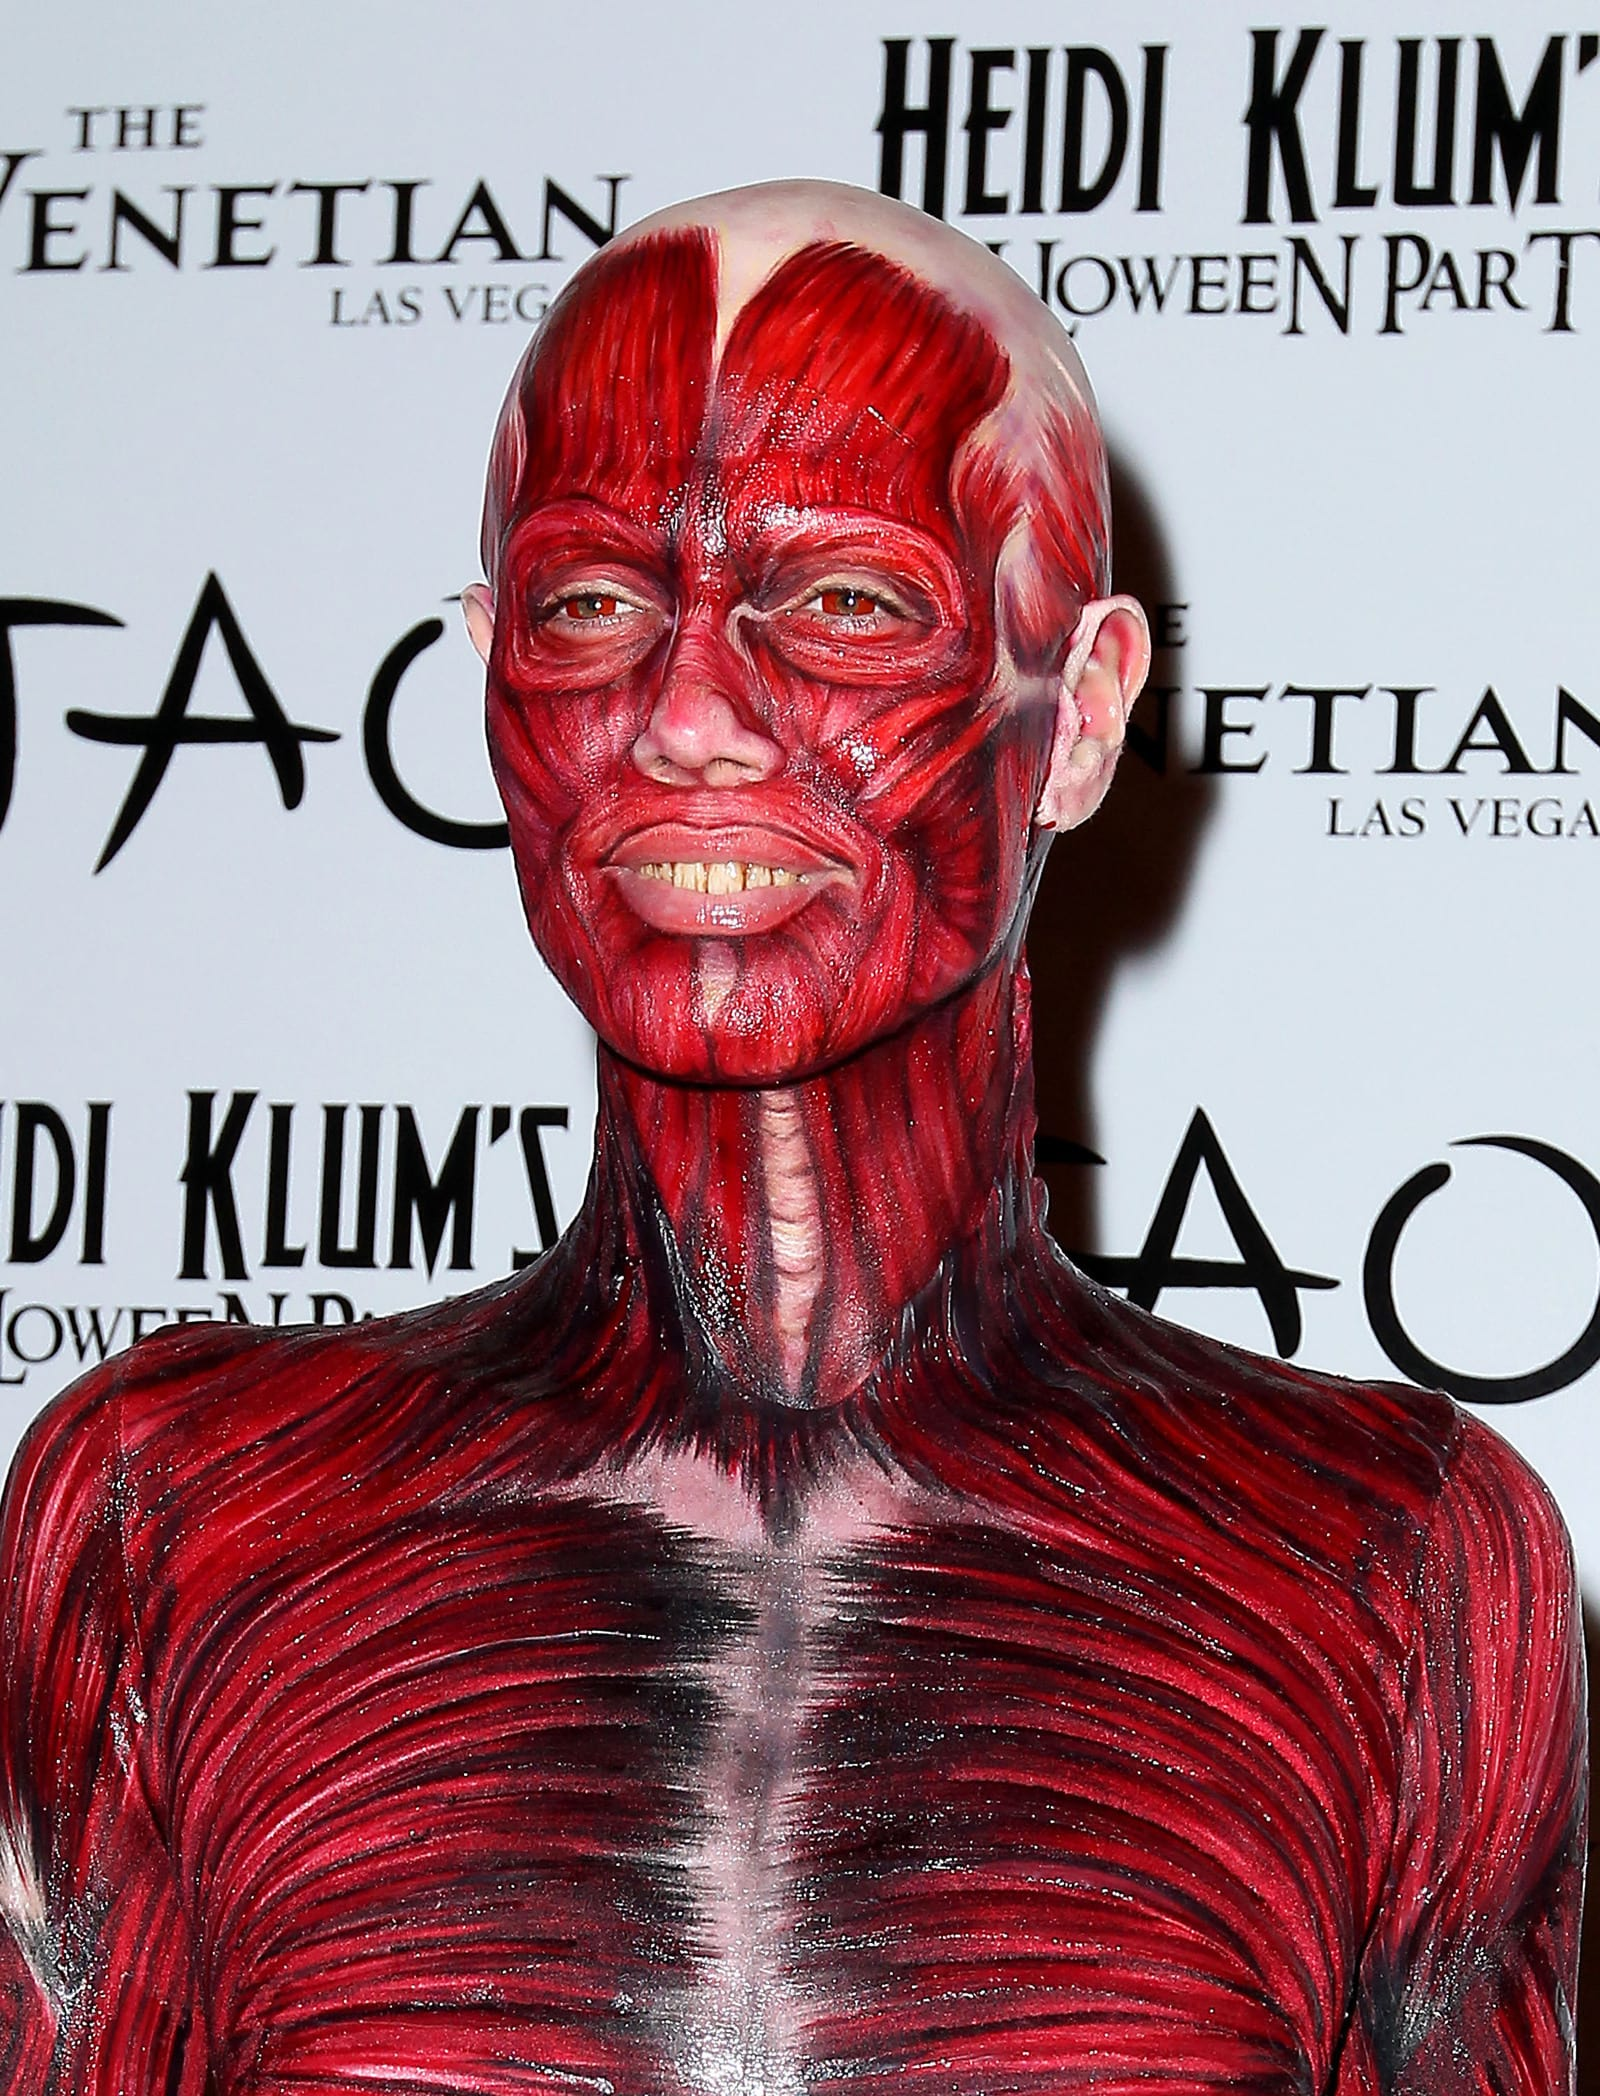 13 Most Memorable Celebrity Halloween Costumes You May Want To